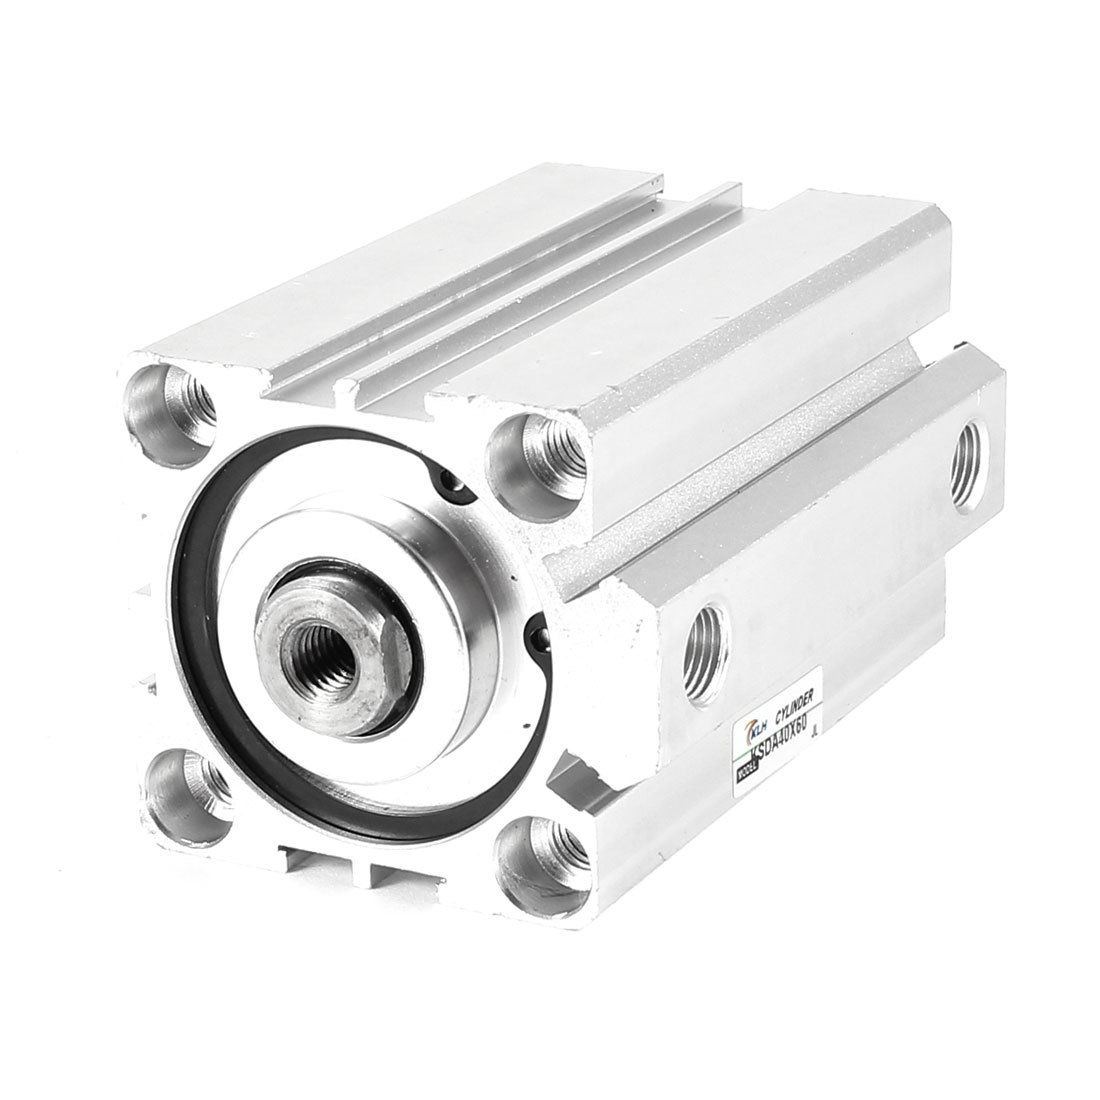 1 Pcs 50mm Bore 60mm Stroke Stainless steel Pneumatic Air Cylinder SDA50-60 43 2012